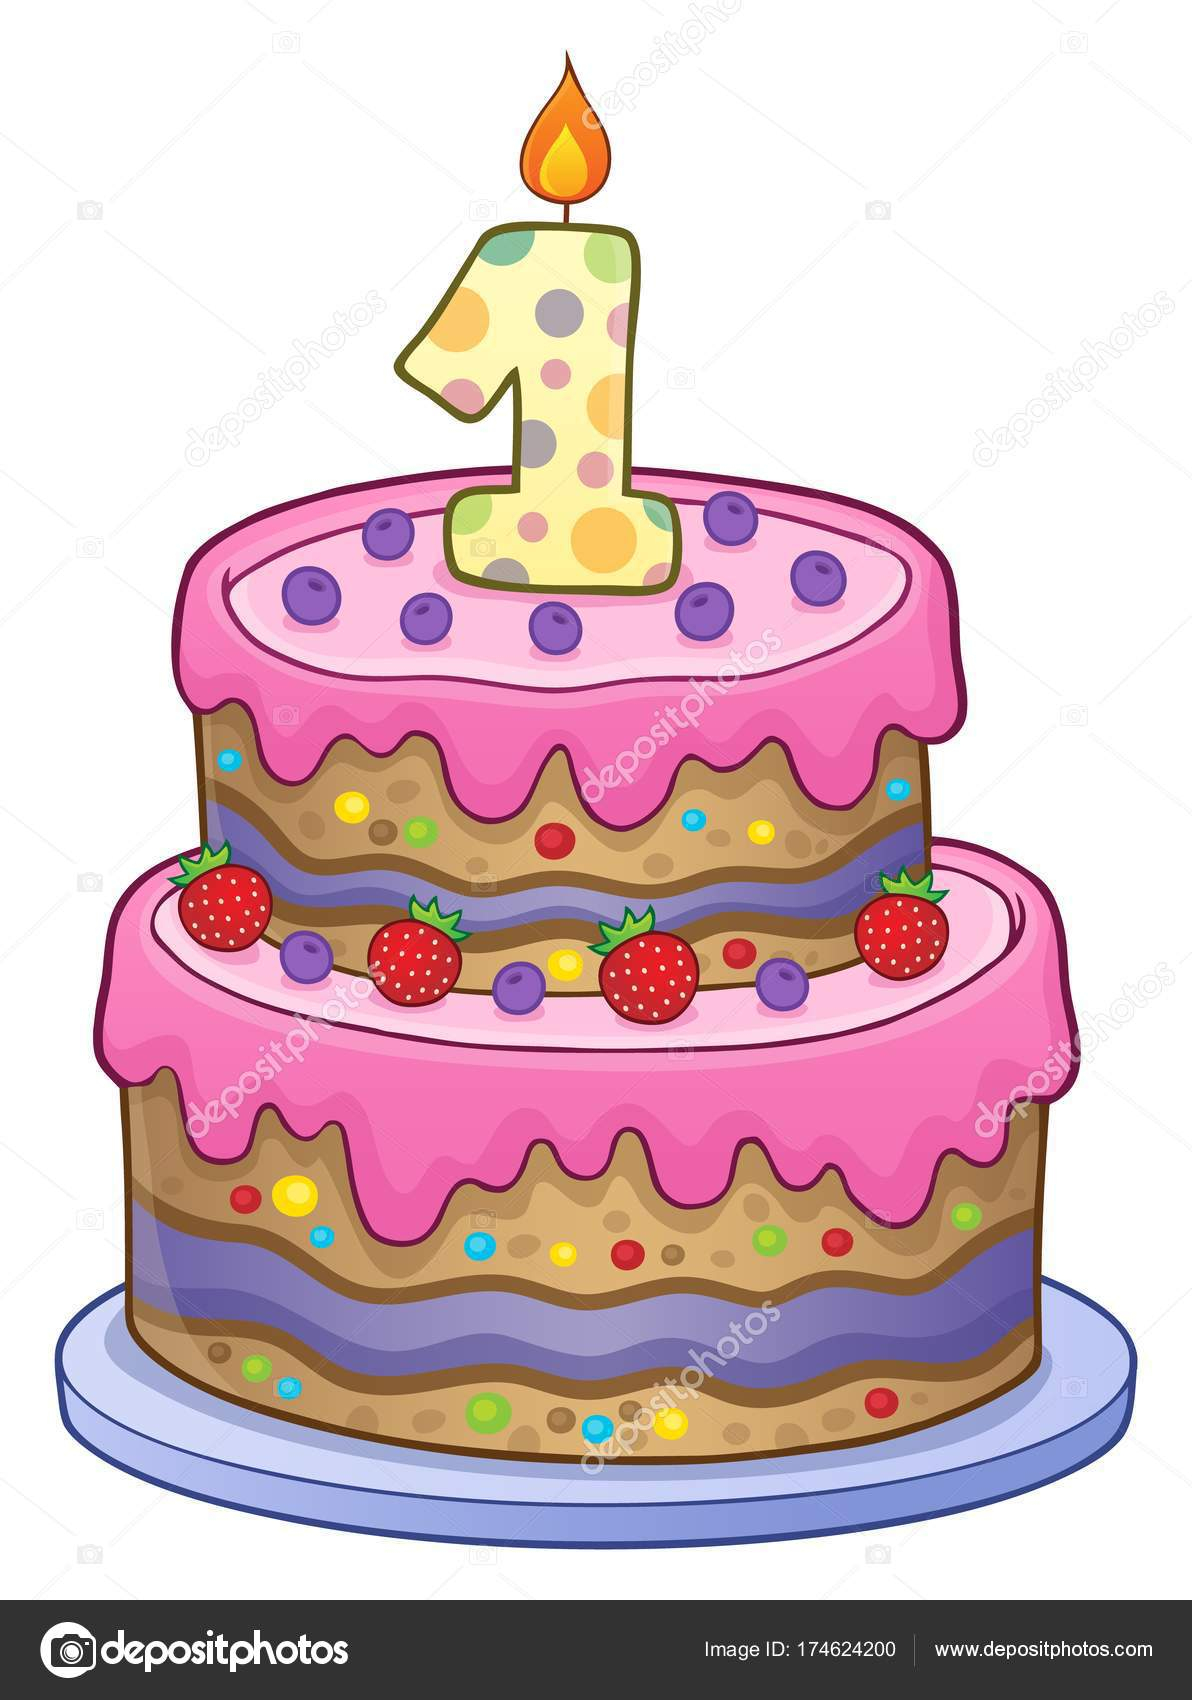 Birthday Cake For 1 Year Old Birthday Cake Image For 1 Year Old Stock Vector Clairev 174624200